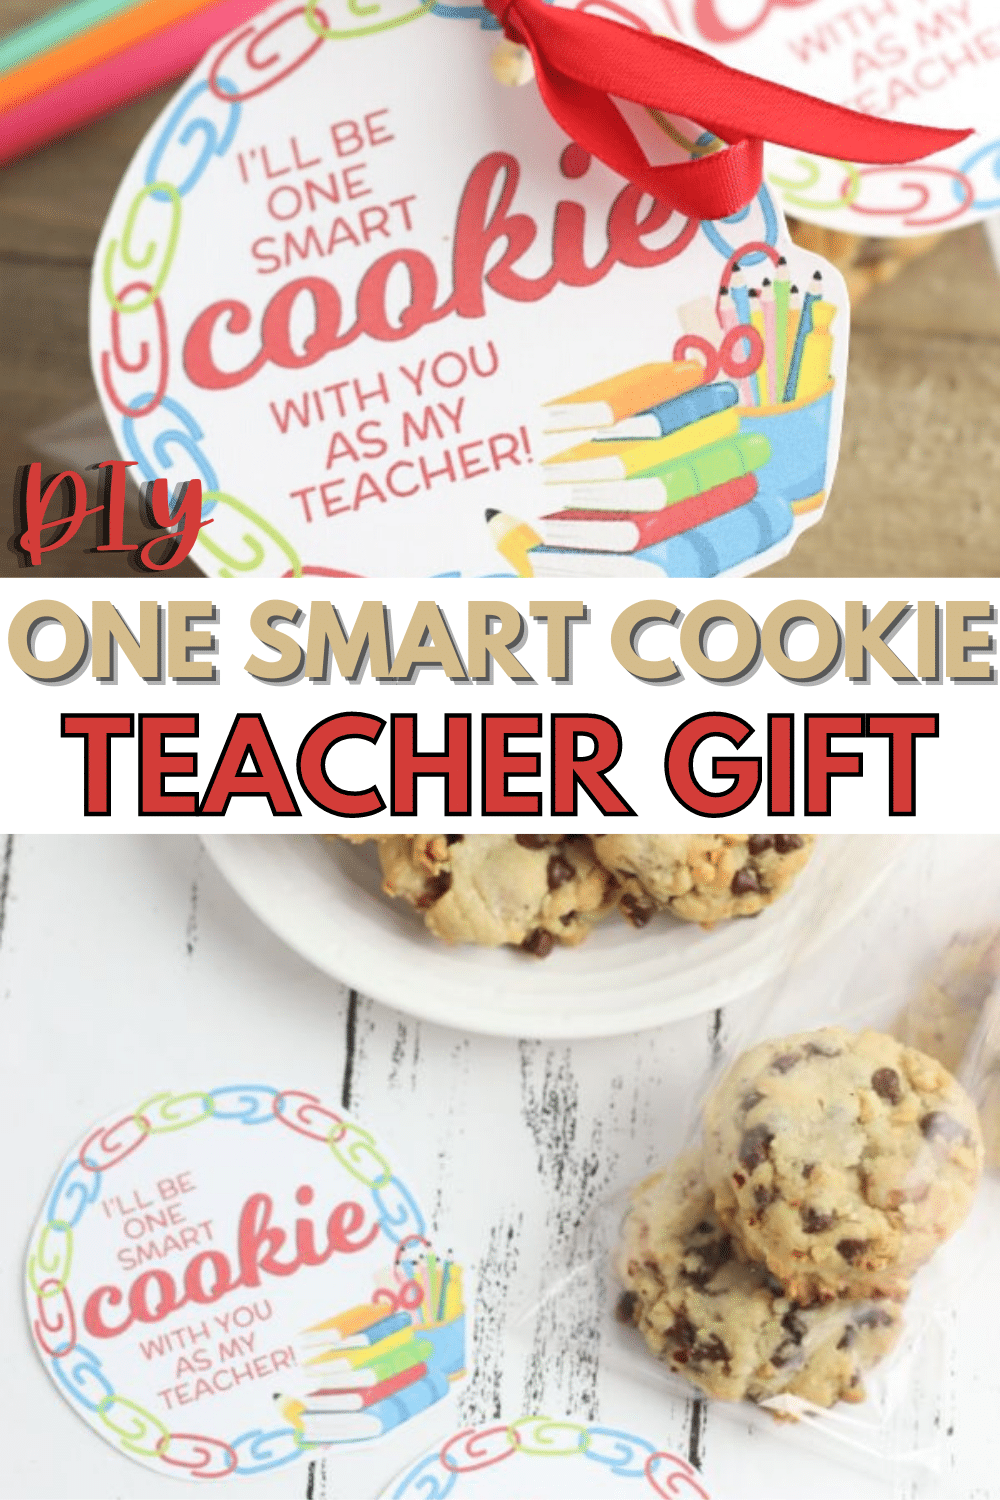 Giving a One Smart Cookie Teacher Gift is the perfect way to start off your child's school year. Grab a printable gift tag and attach it to some cookies. #printables #teachergifts #gifttags via @wondermomwannab